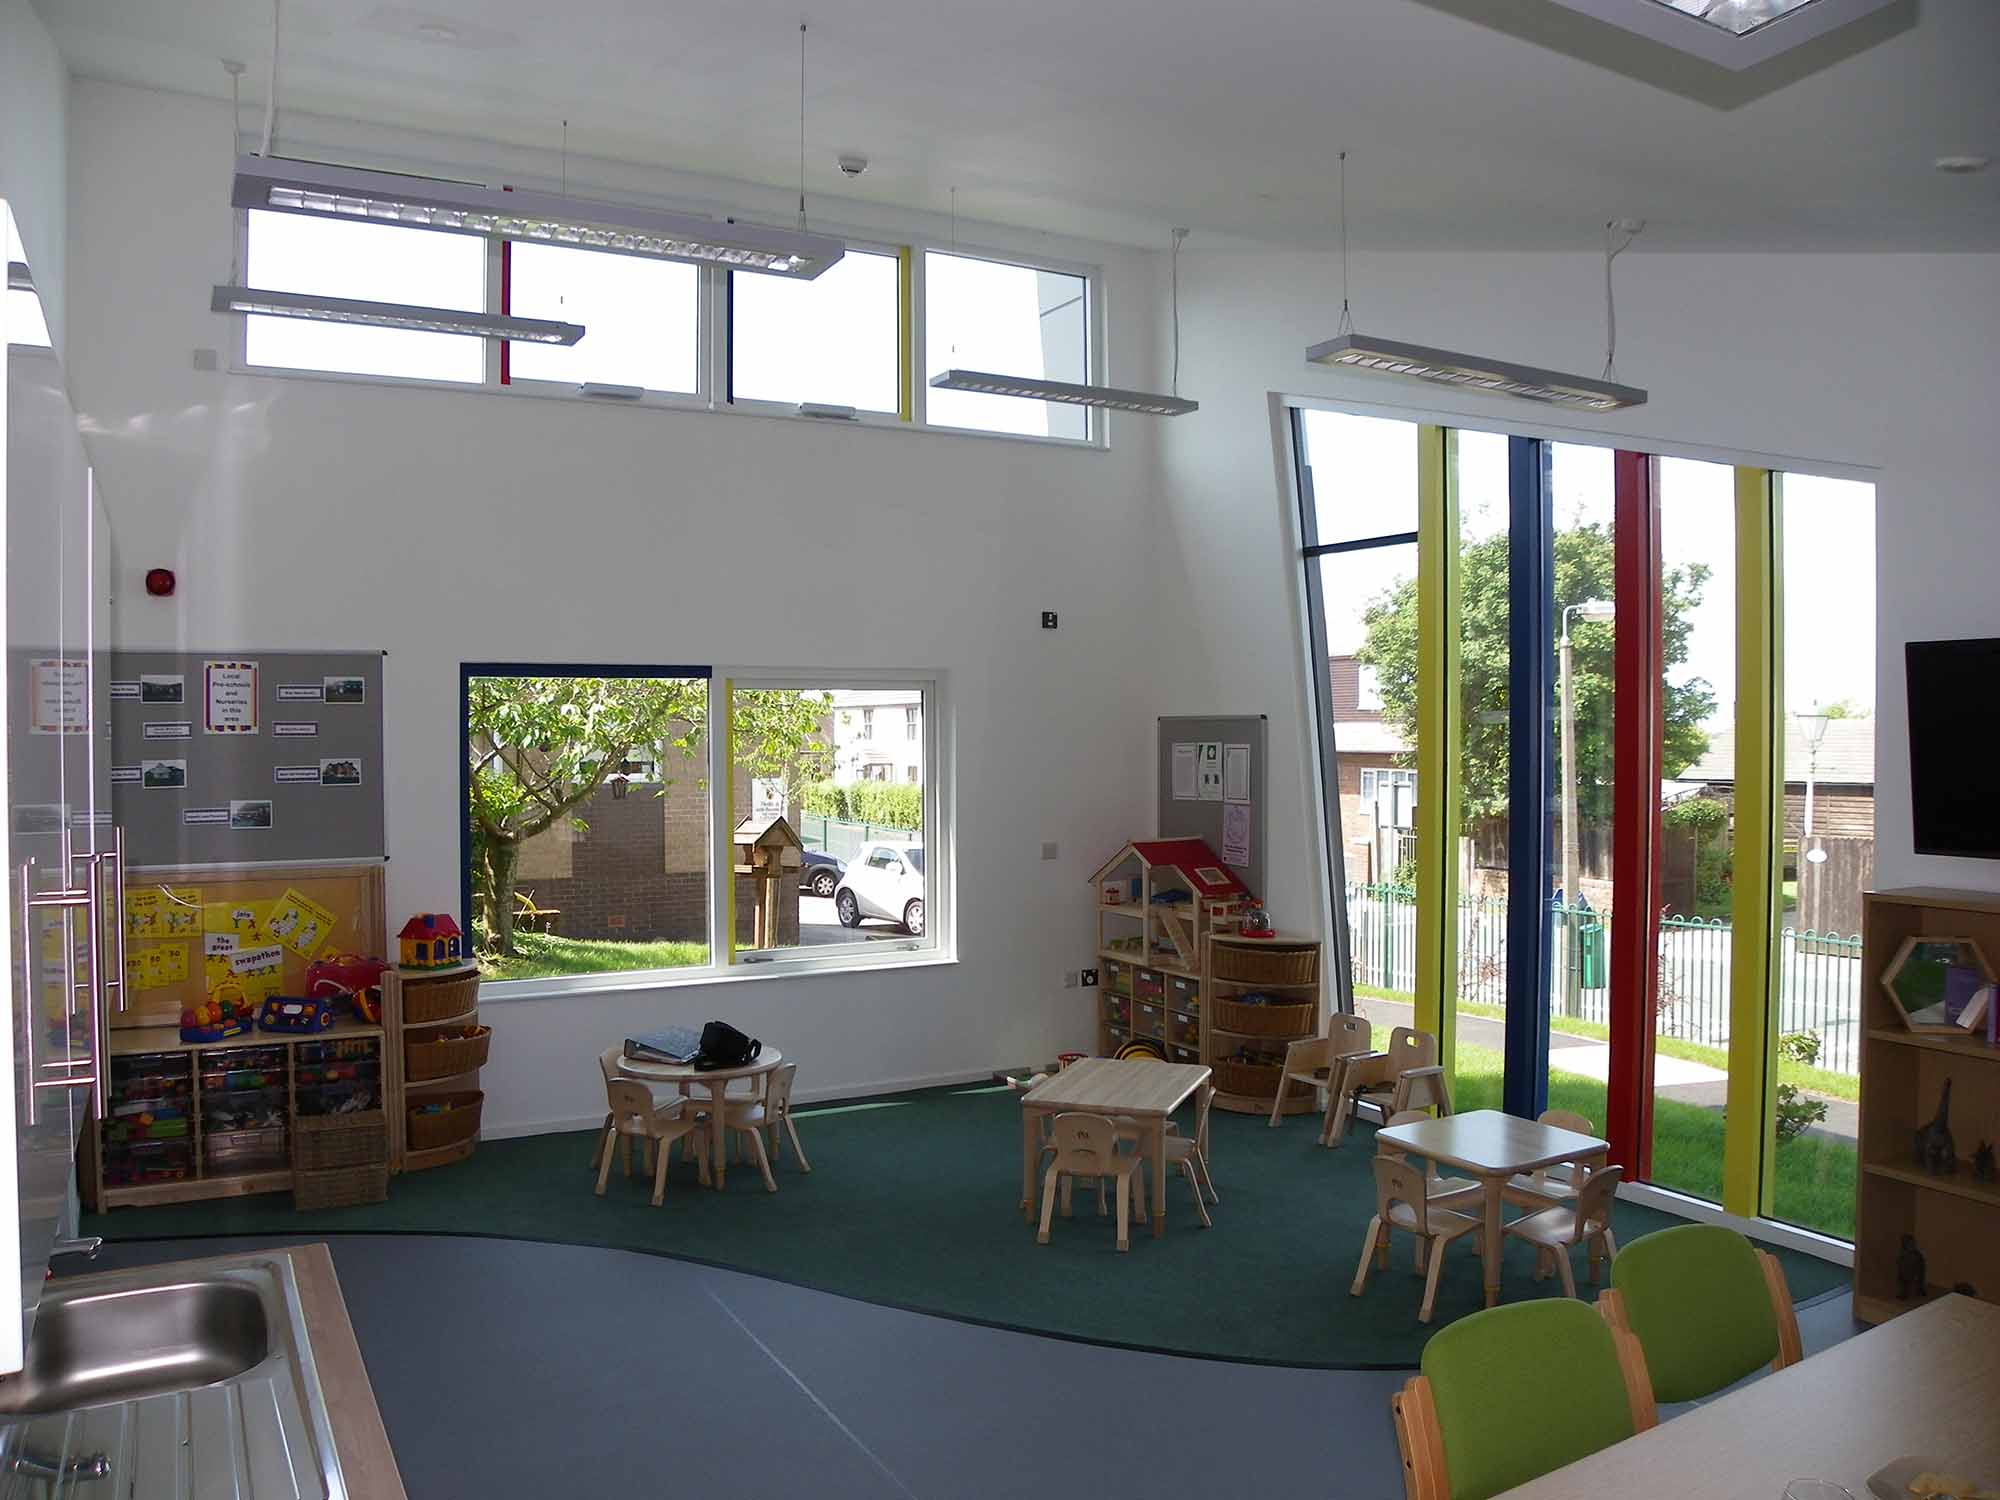 Hesketh Bank Childrens Centre